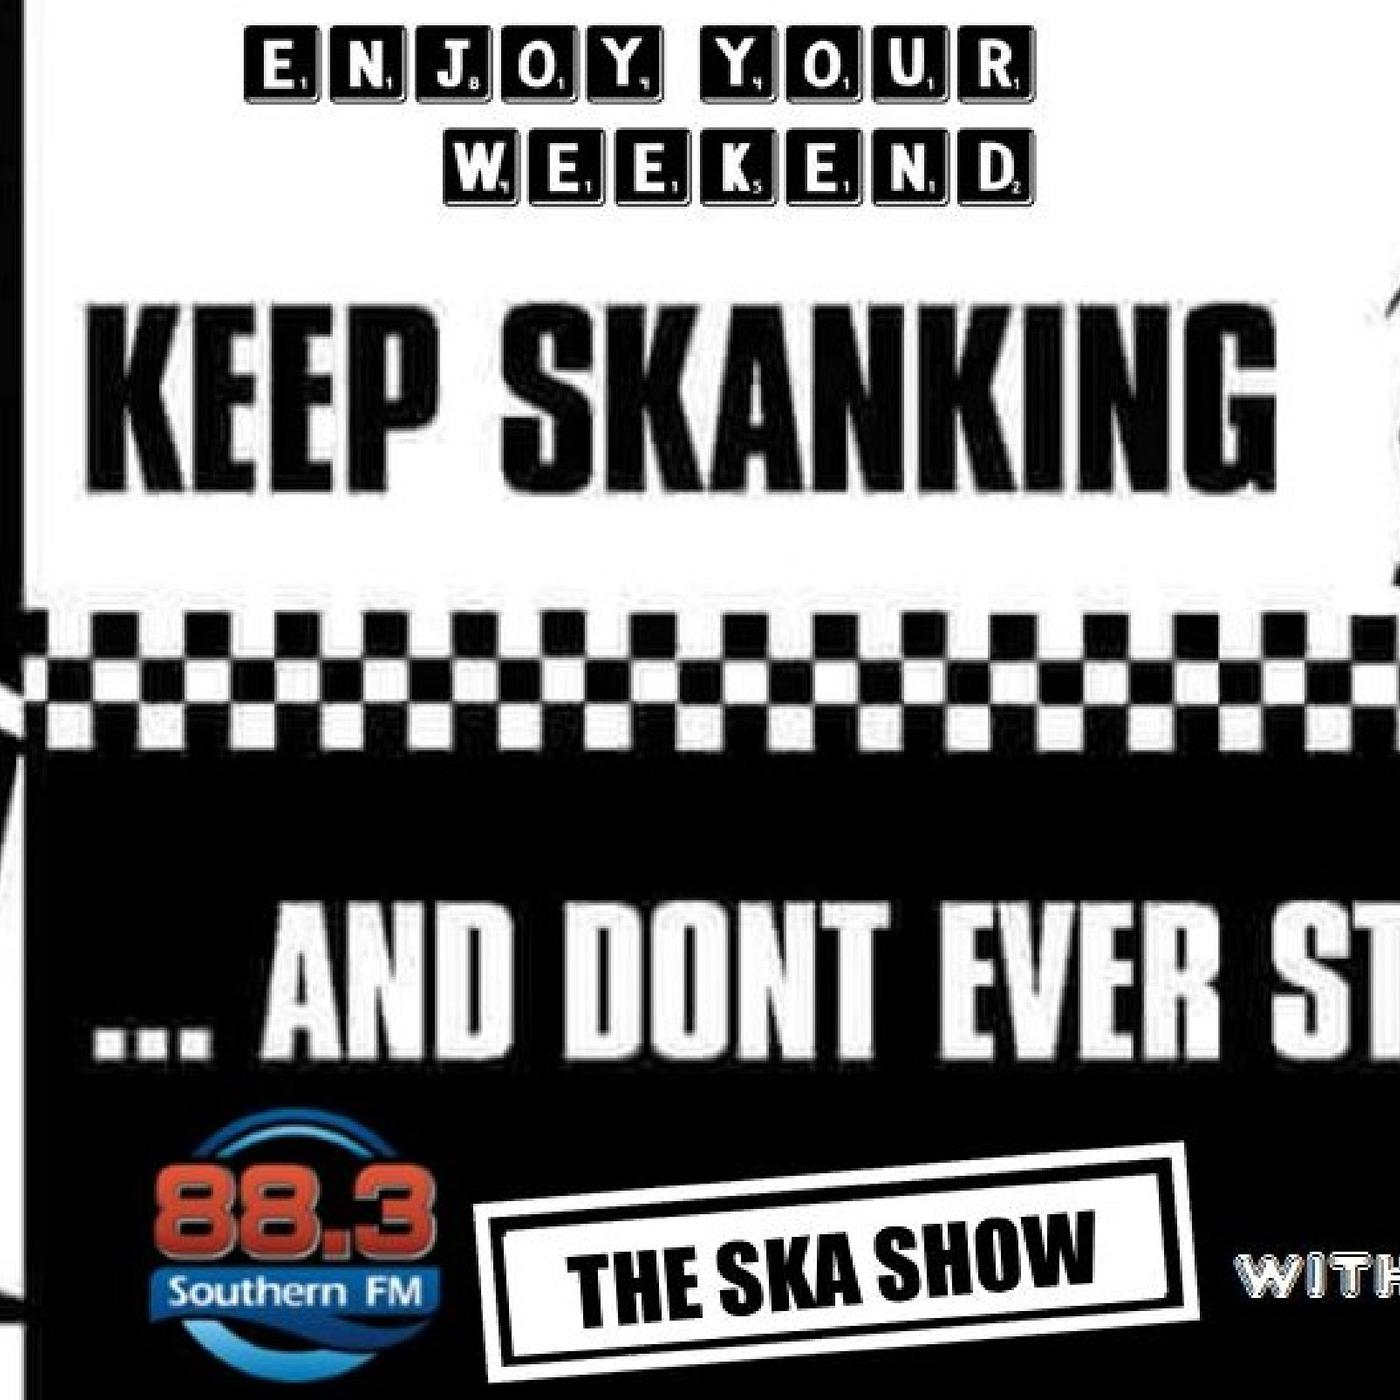 The Ska Show with Beefy, Feb 8 2018